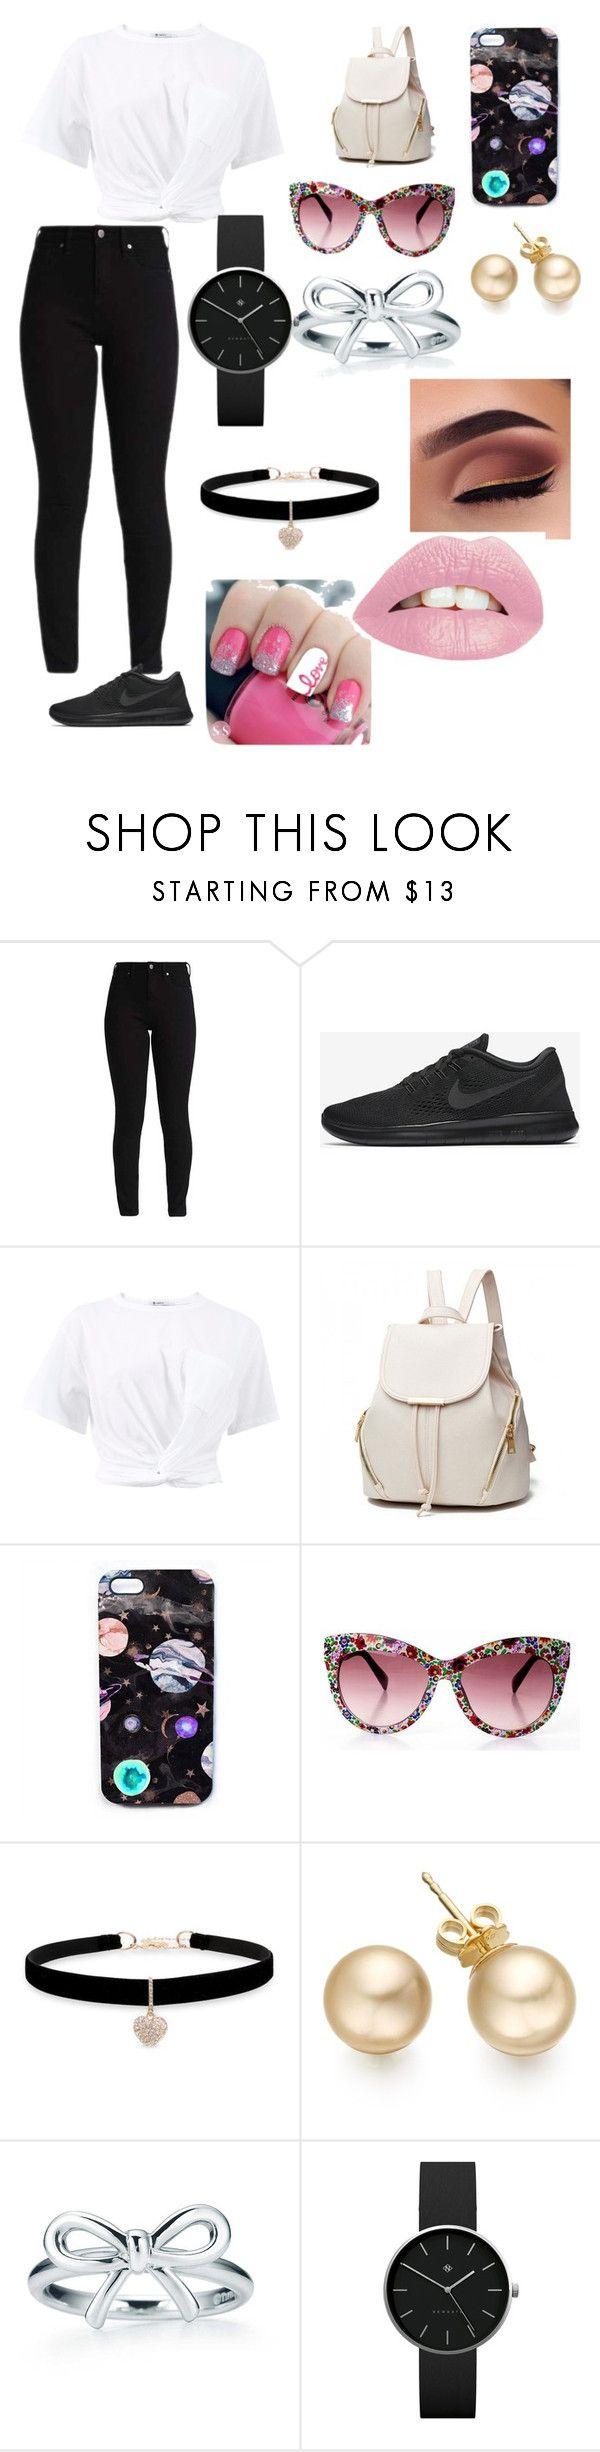 """Casual Date"" by lottie-farmer ❤ liked on Polyvore featuring NIKE, T By Alexander Wang, Nikki Strange, Betsey Johnson and Newgate"